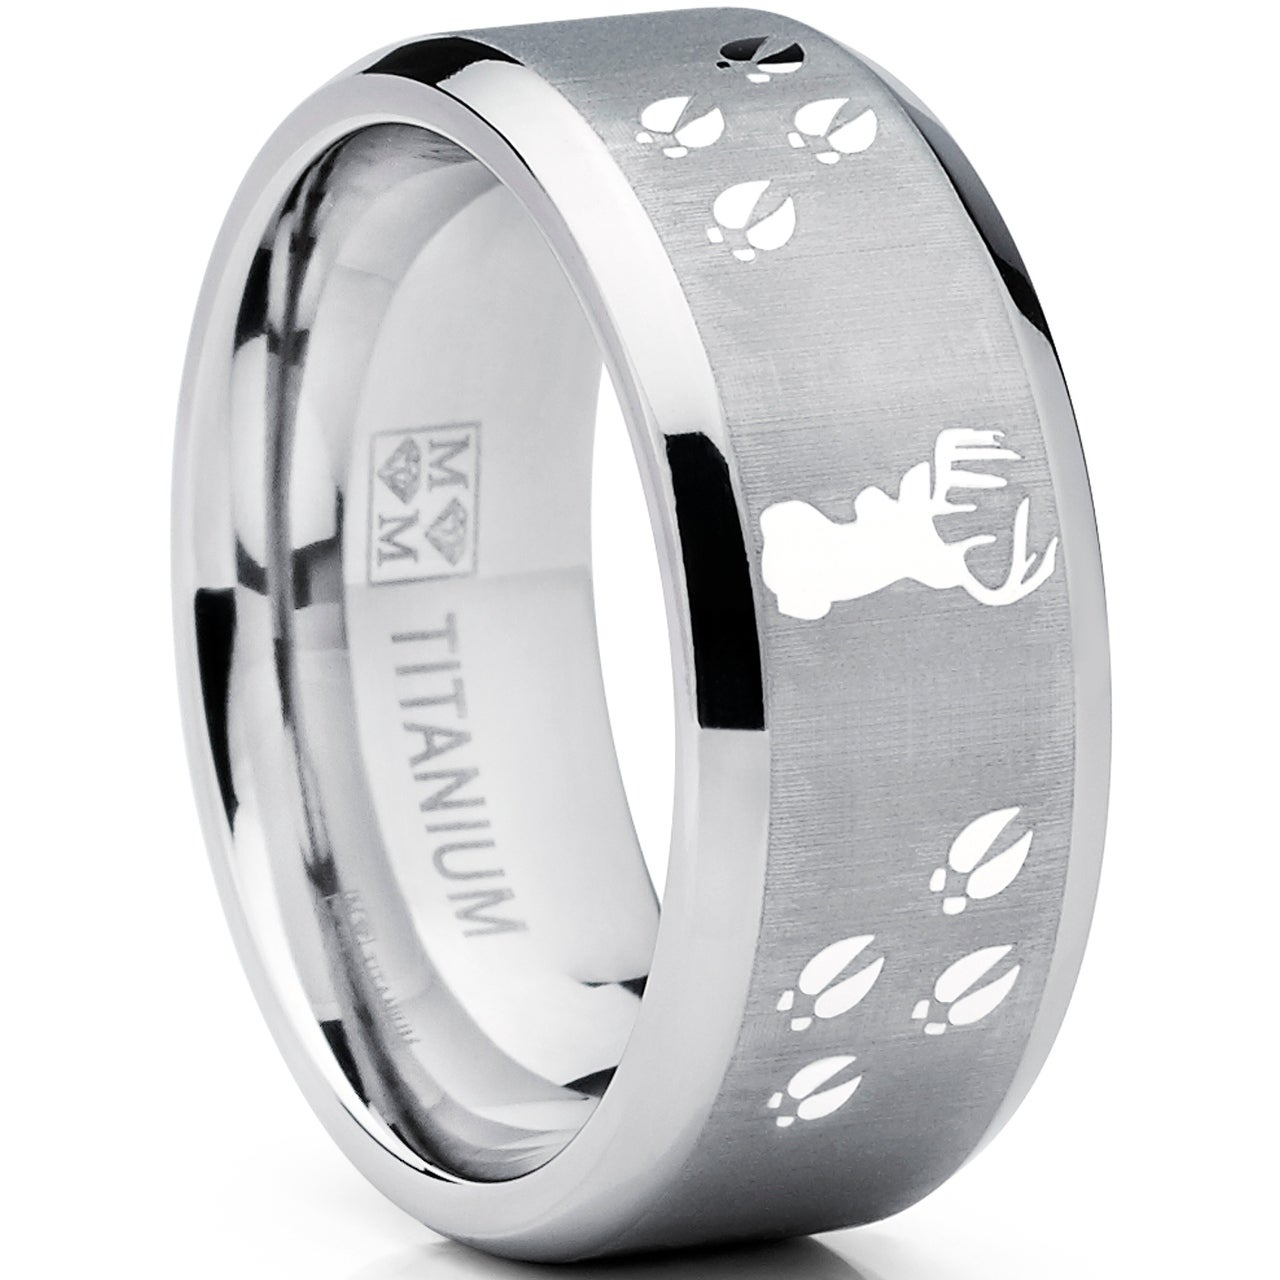 Mens Outdoors Bands: Oliveti Men's Titanium Hunting Deer Tracks Ring Outdoor